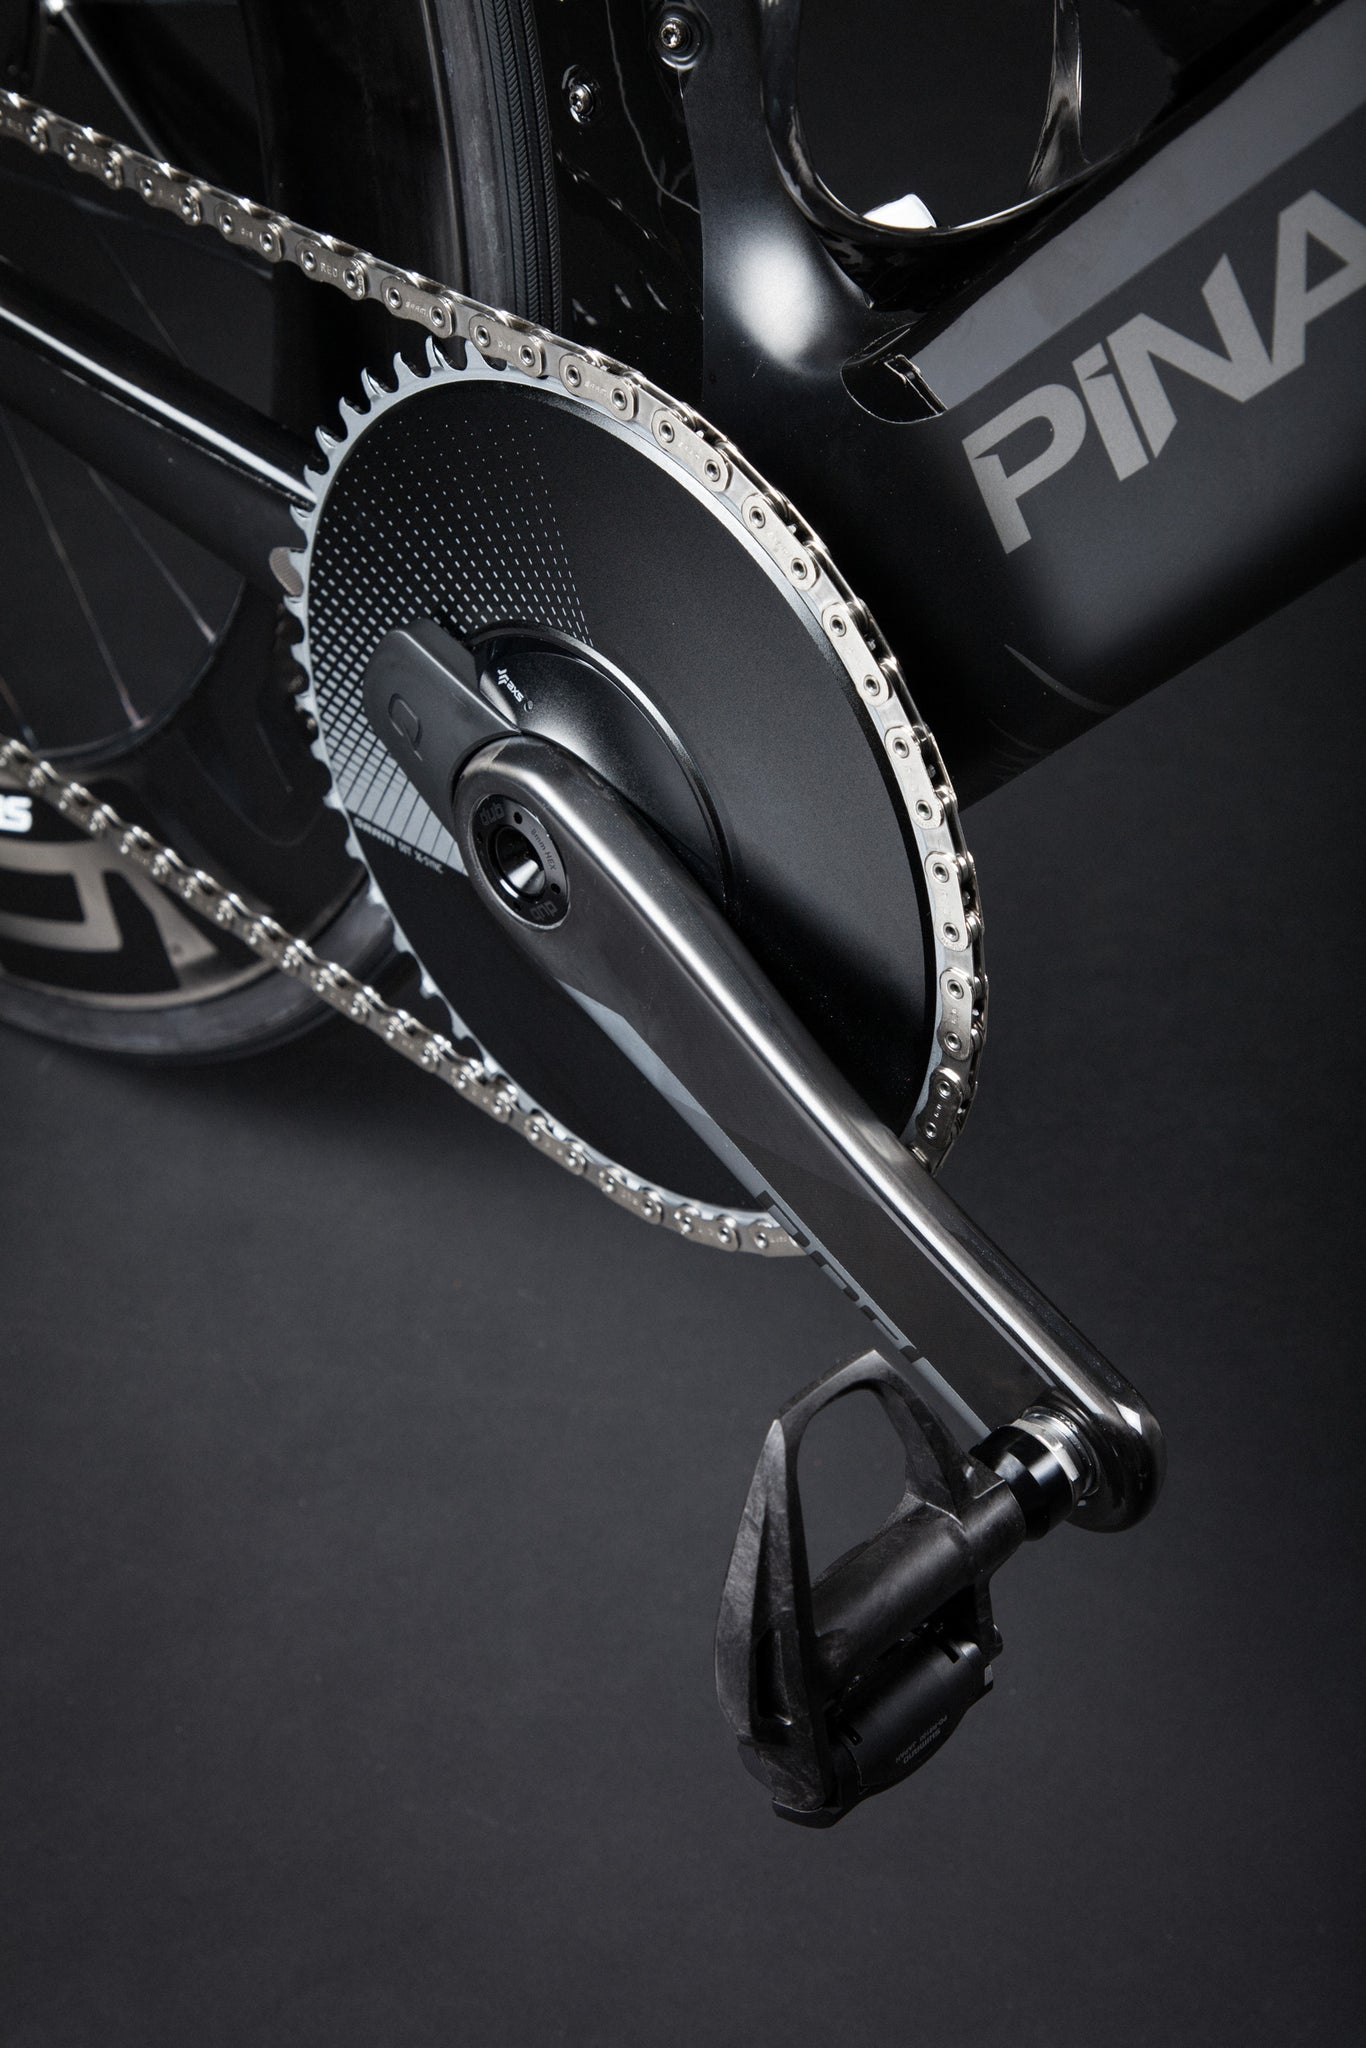 A Blacked Out Pinarello Bolide Gallery AXS aero crank